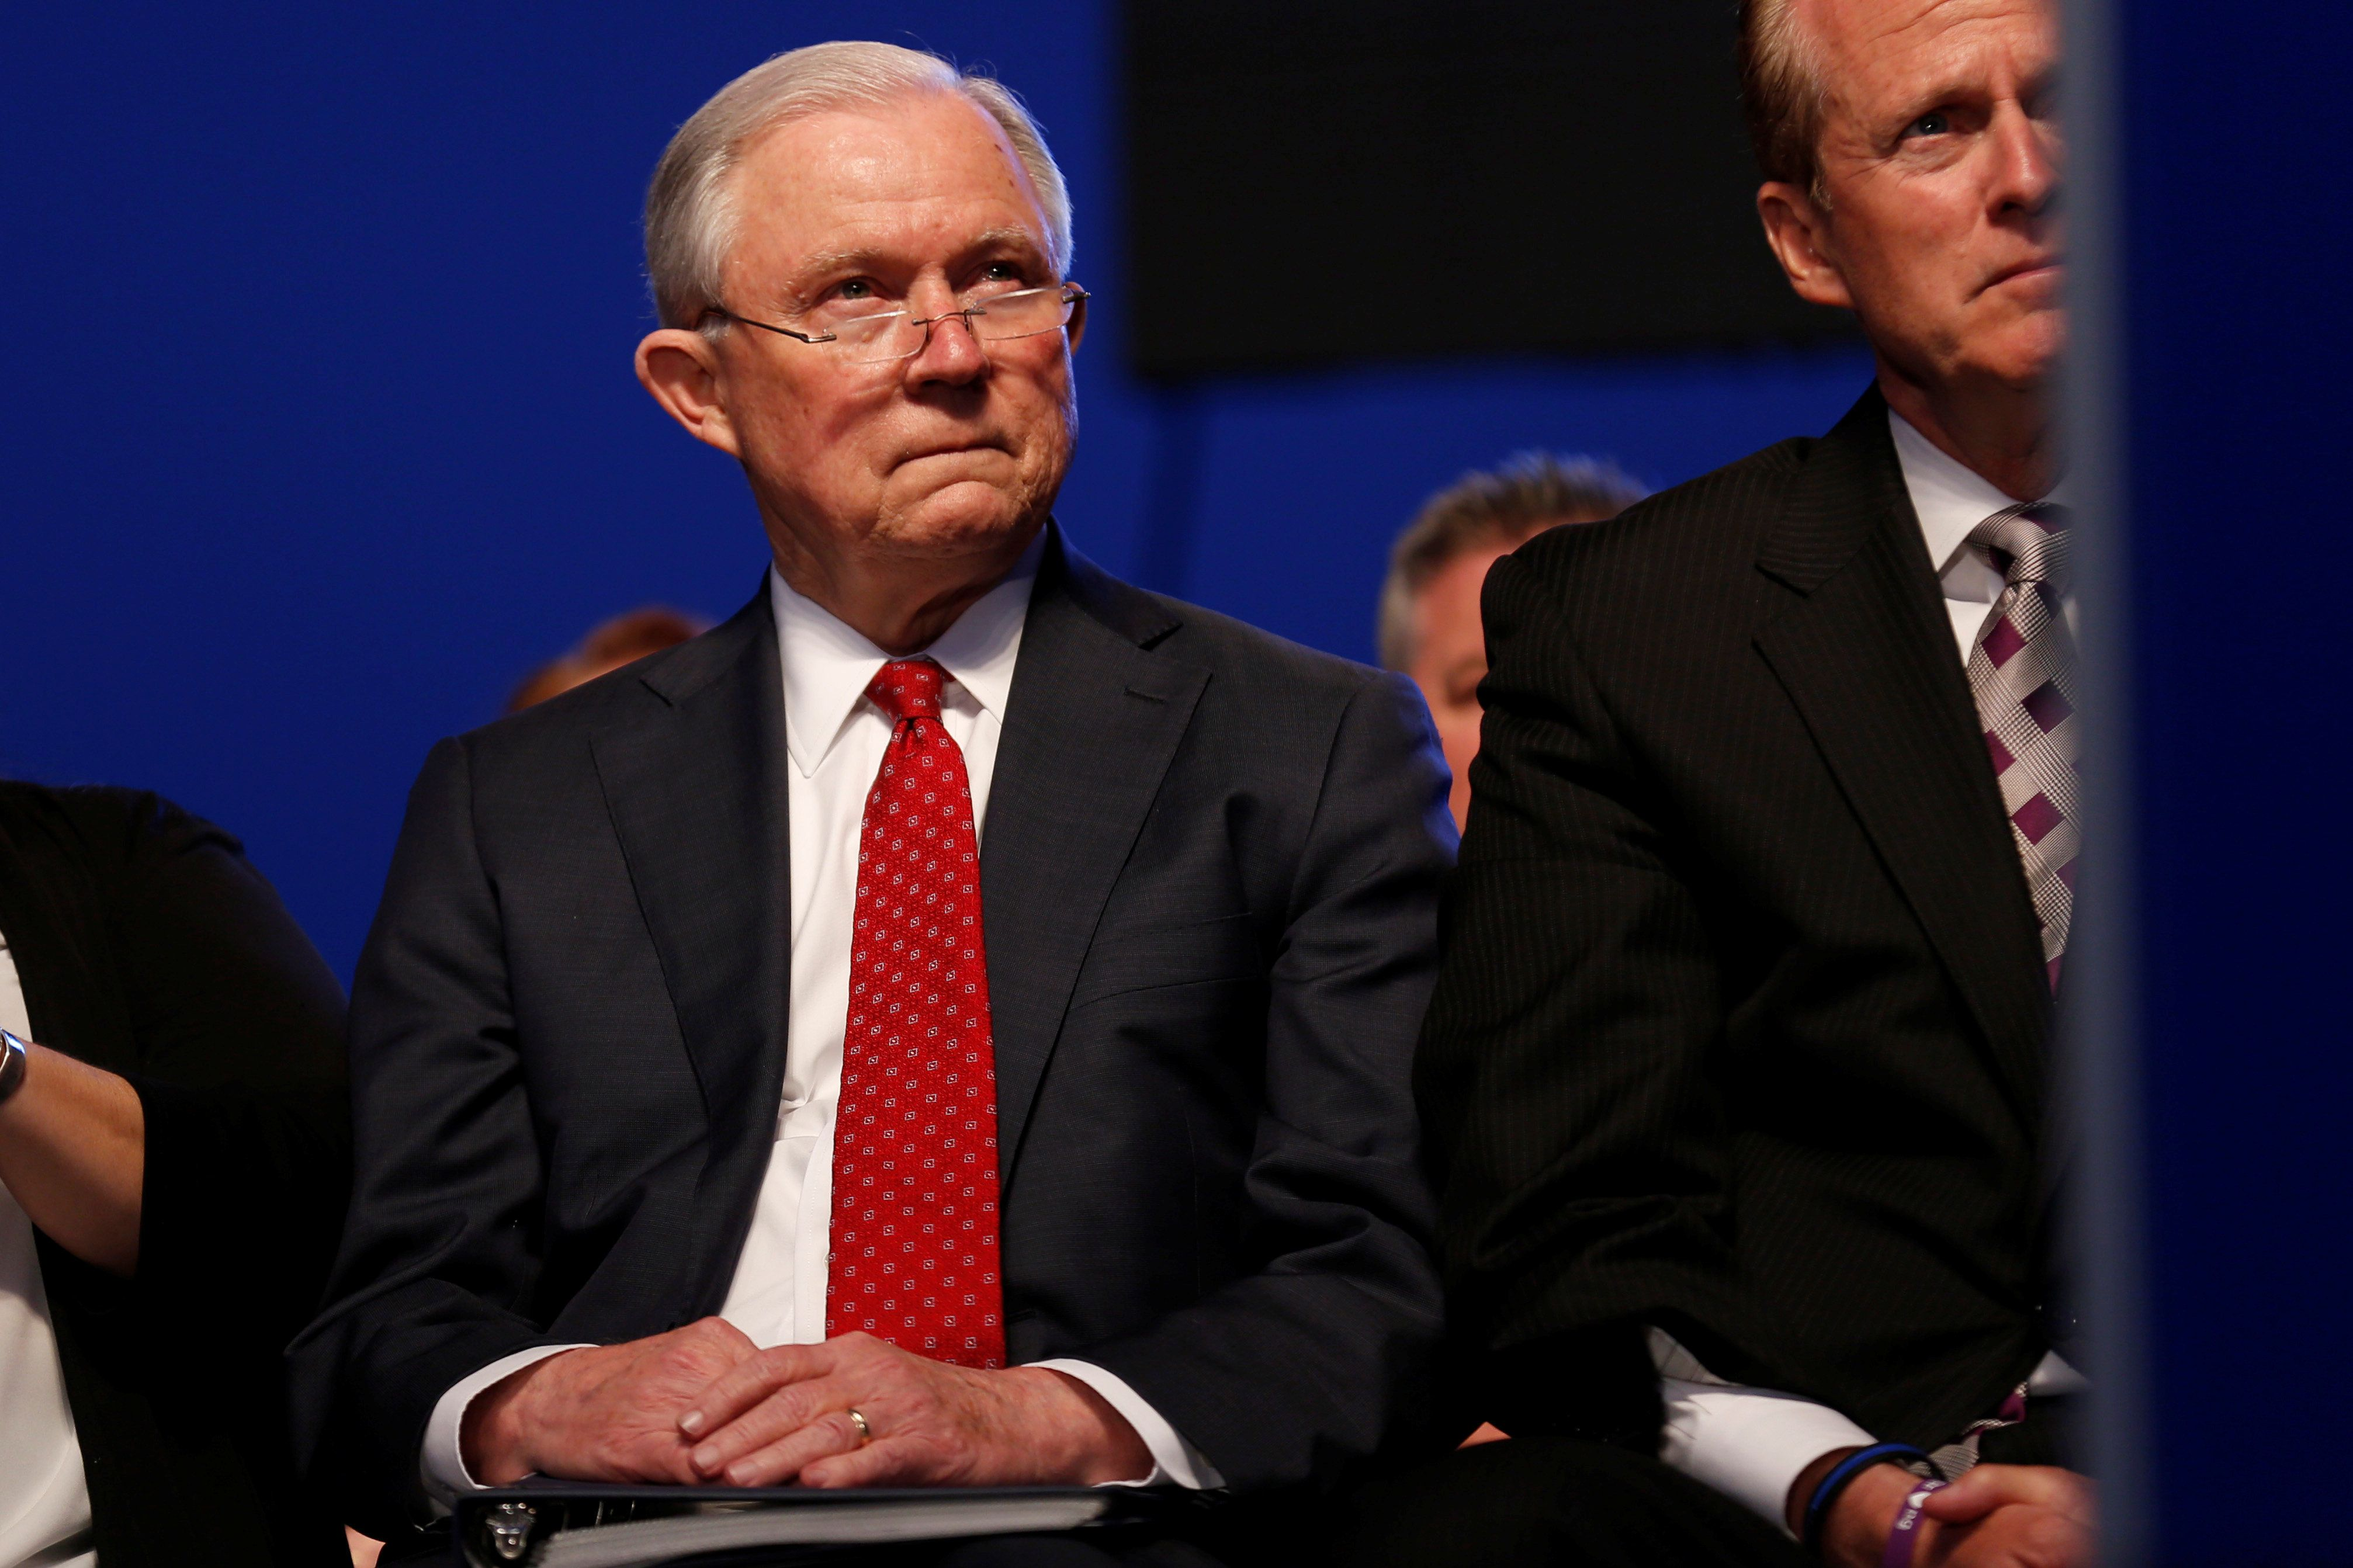 U.S. Attorney General Jeff Sessions waits to deliver remarks at the National Law Enforcement Officers Memorial Fund's 30th annual candlelight vigil in Washington, U.S., May 13, 2018.      REUTERS/Joshua Roberts